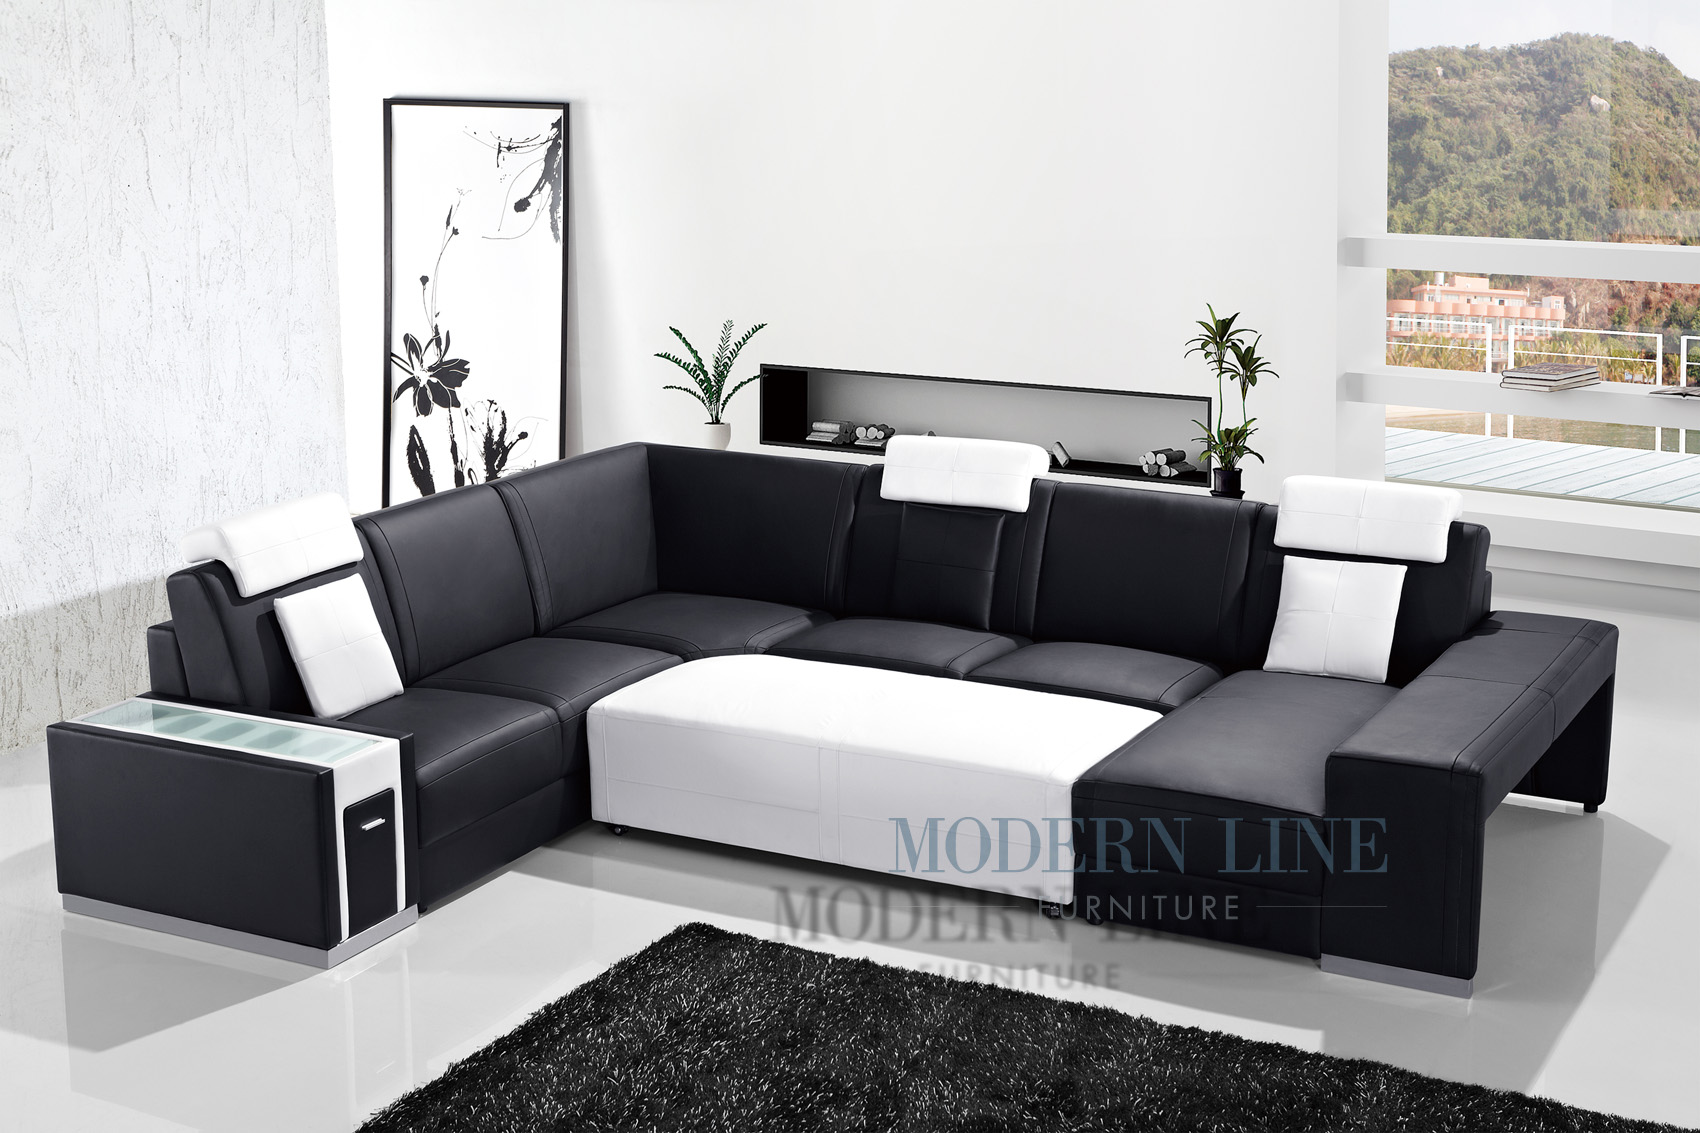 Modern Line Furniture - Commercial Furniture - Custom Made Furniture | Ulta Modern Black Leather Sectional Sofa with Console And Large Ottoman